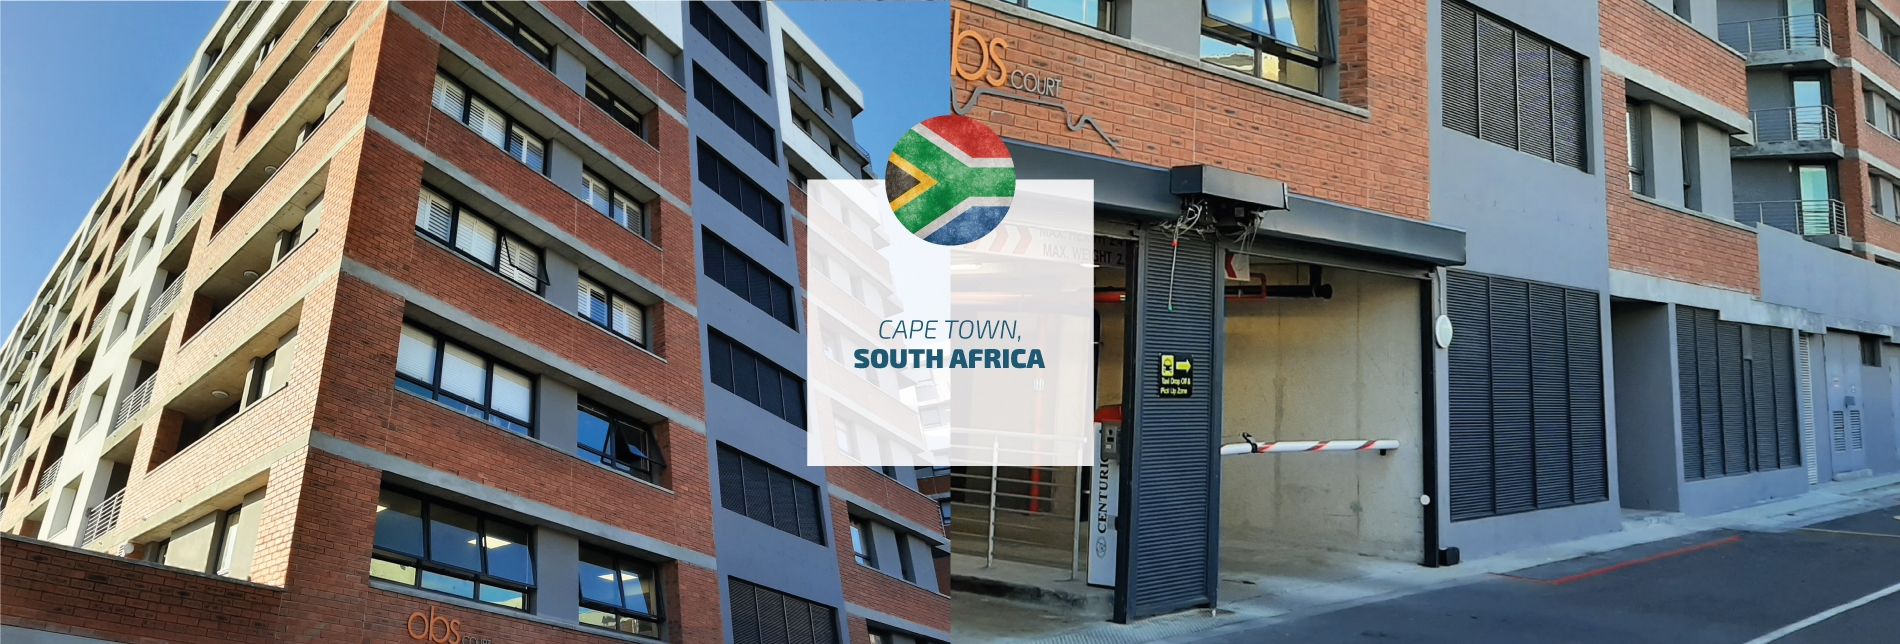 Africa OBS Court Cape Town South Africa